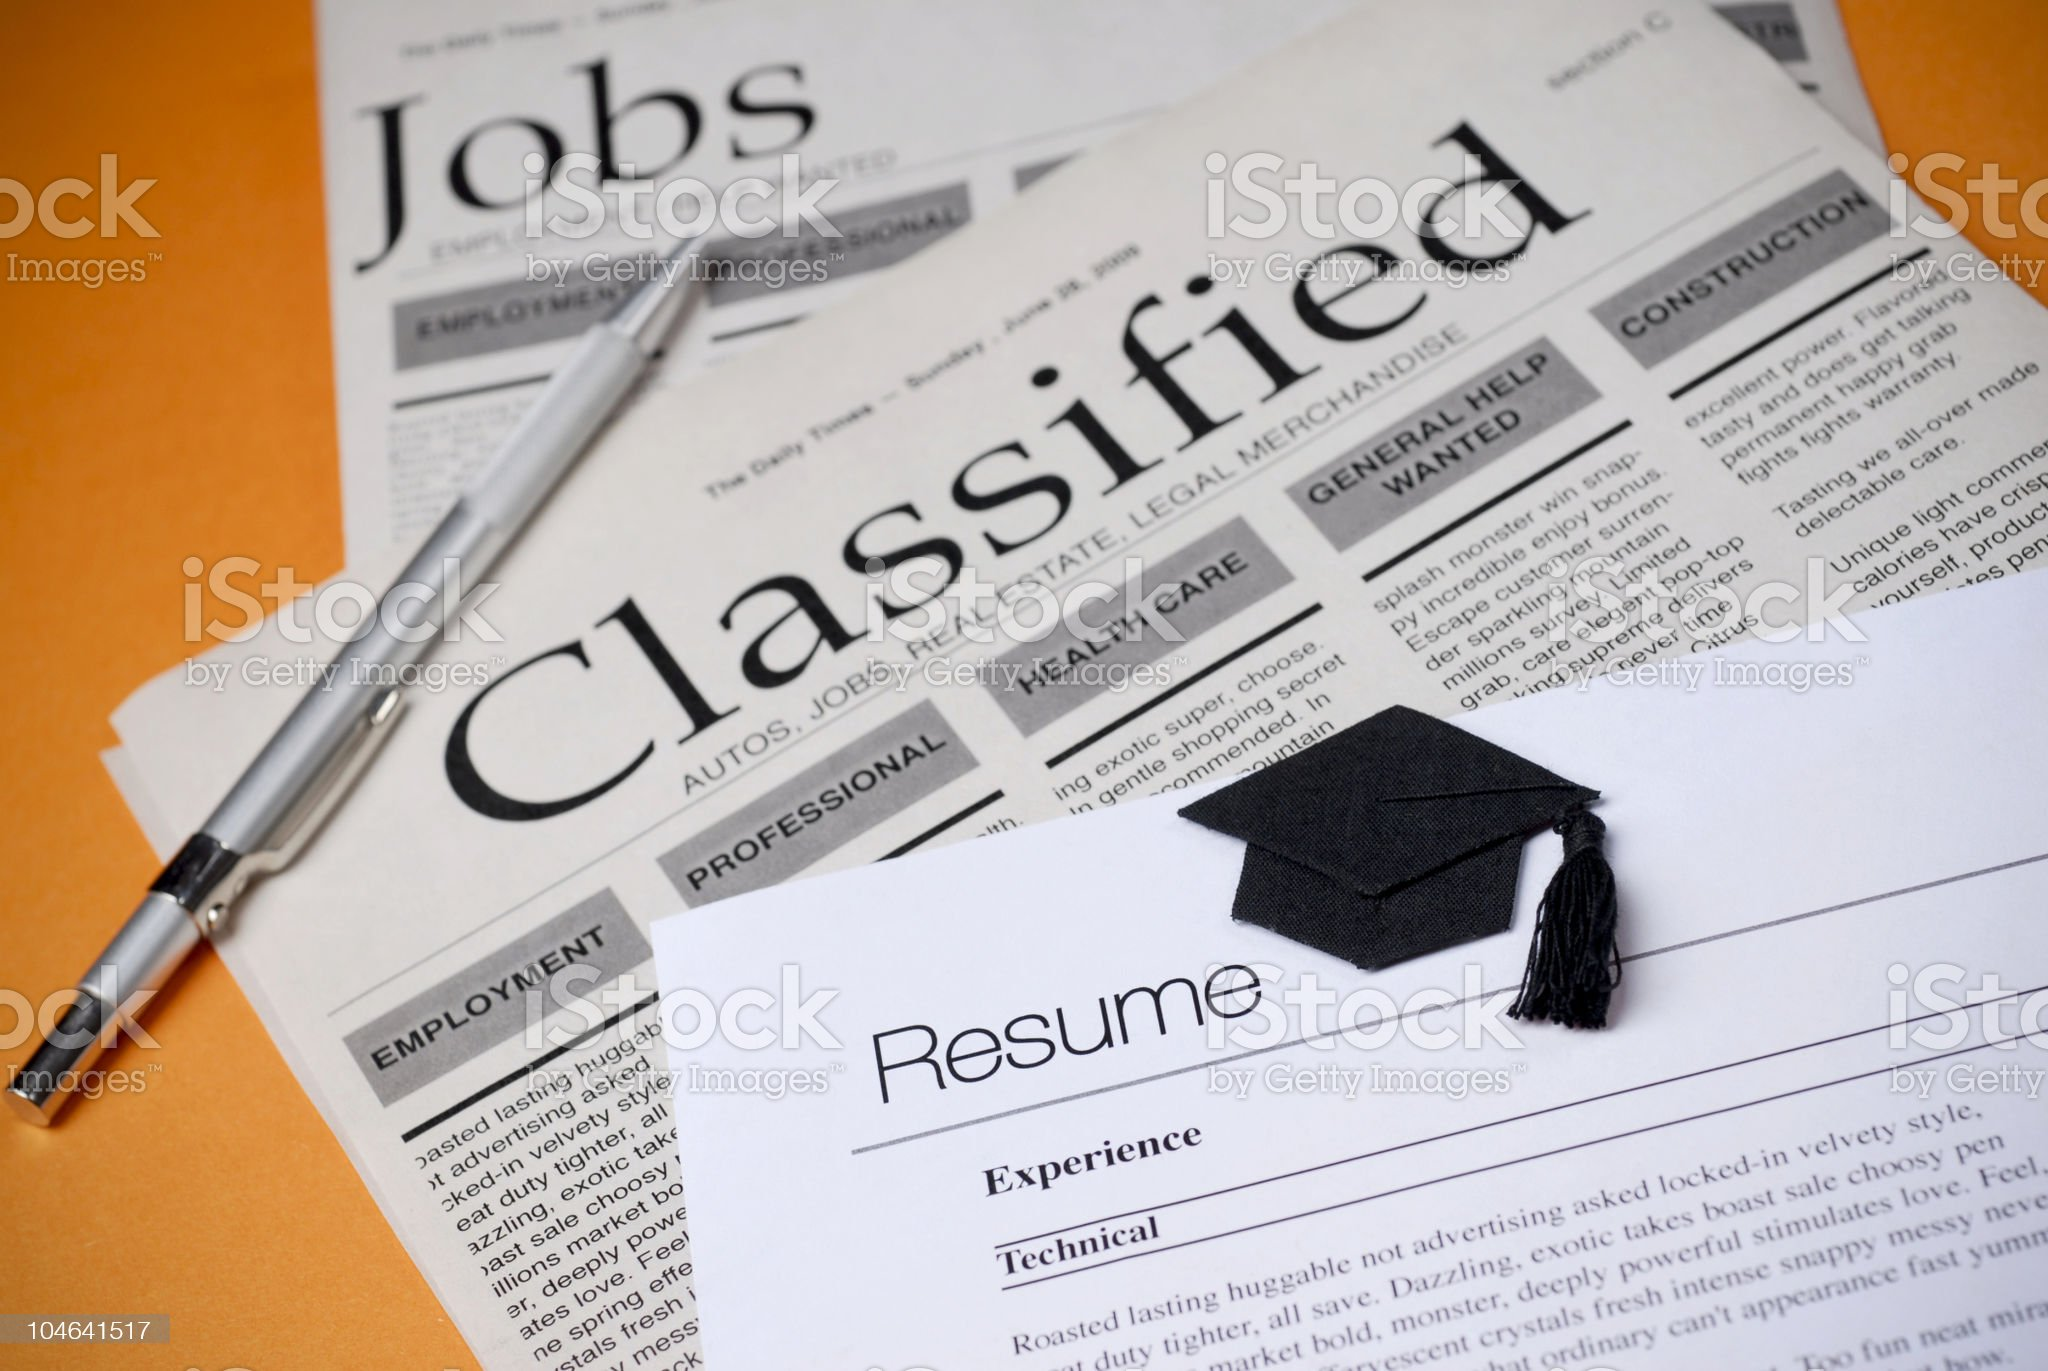 Jobs and Classified royalty-free stock photo